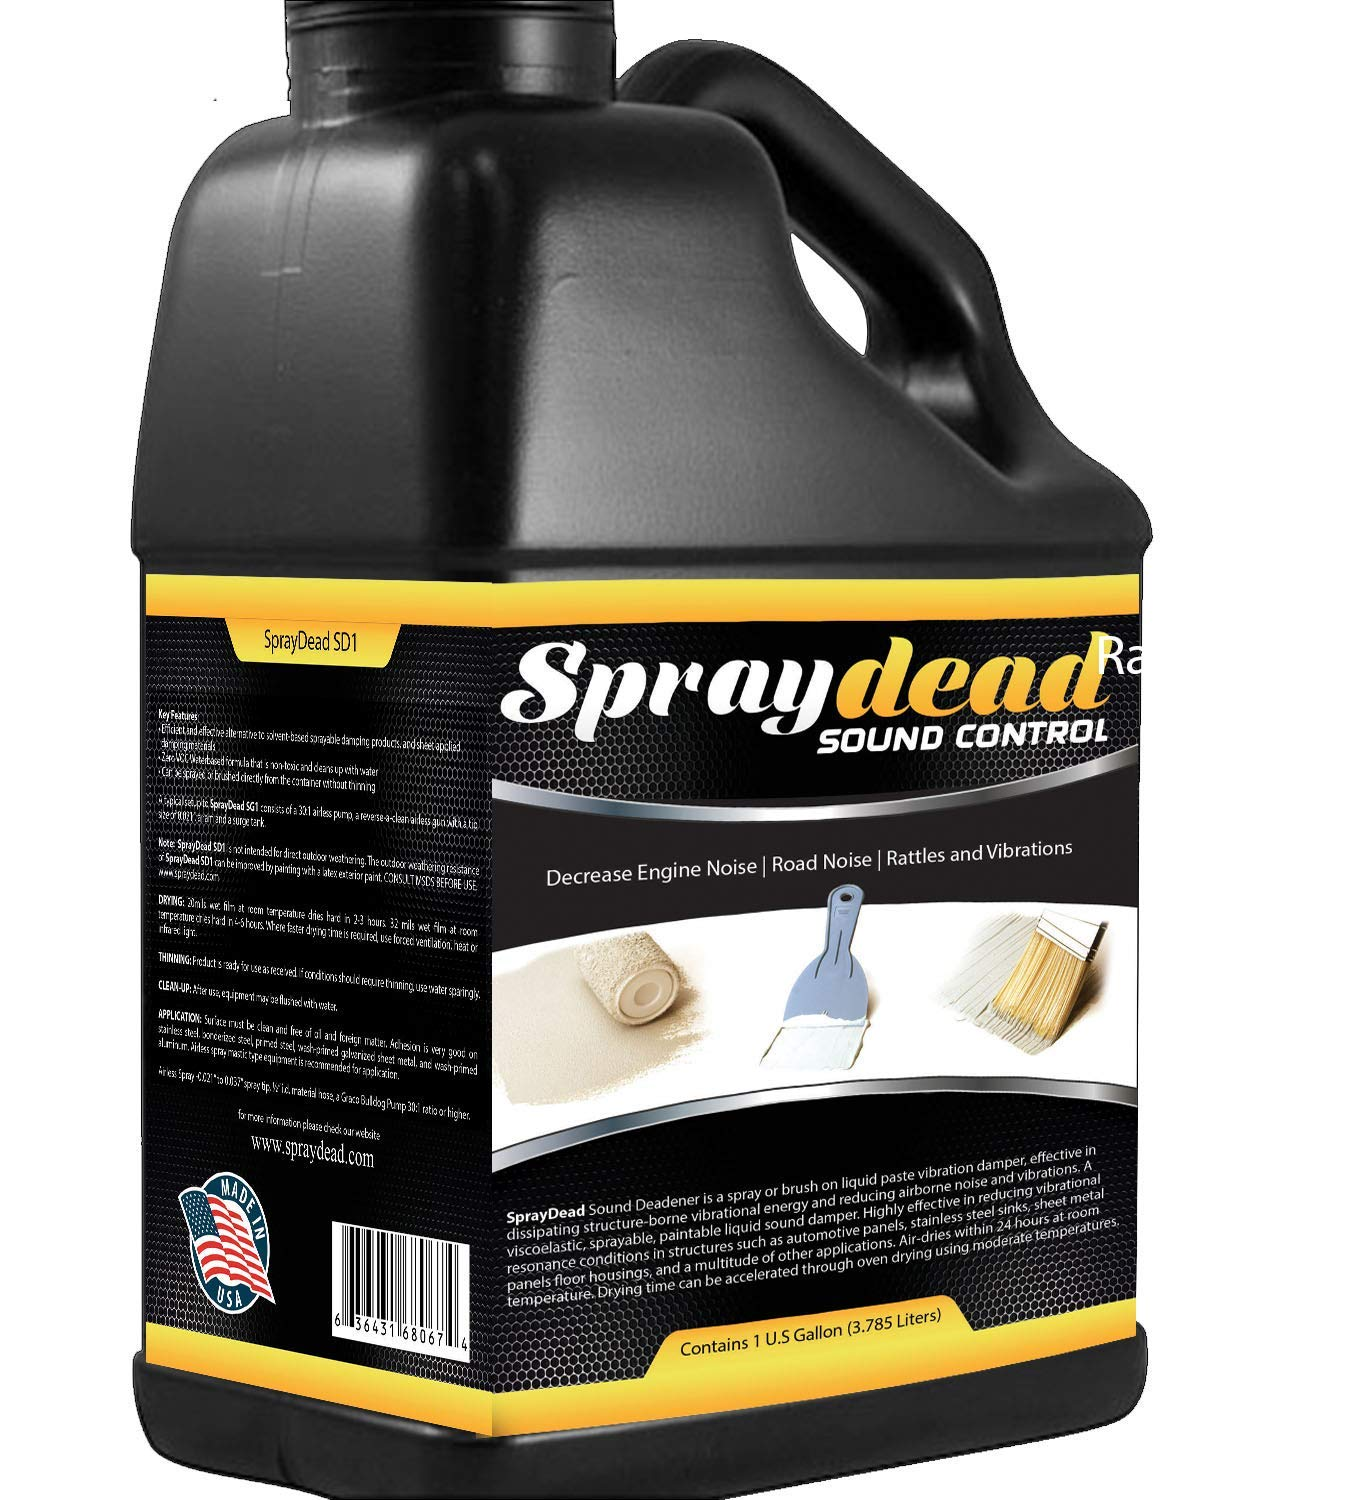 1 Gallon Spraydead Sprayable/brushable Paint on Liquid Sound Deadener,brush, or Spray on Dead Noise Proofing Control Material + Free Application Brush Gloves and Coupon Card Brushable Paintable Paint on Thermal Automotive Coating Liquid Sludge Material